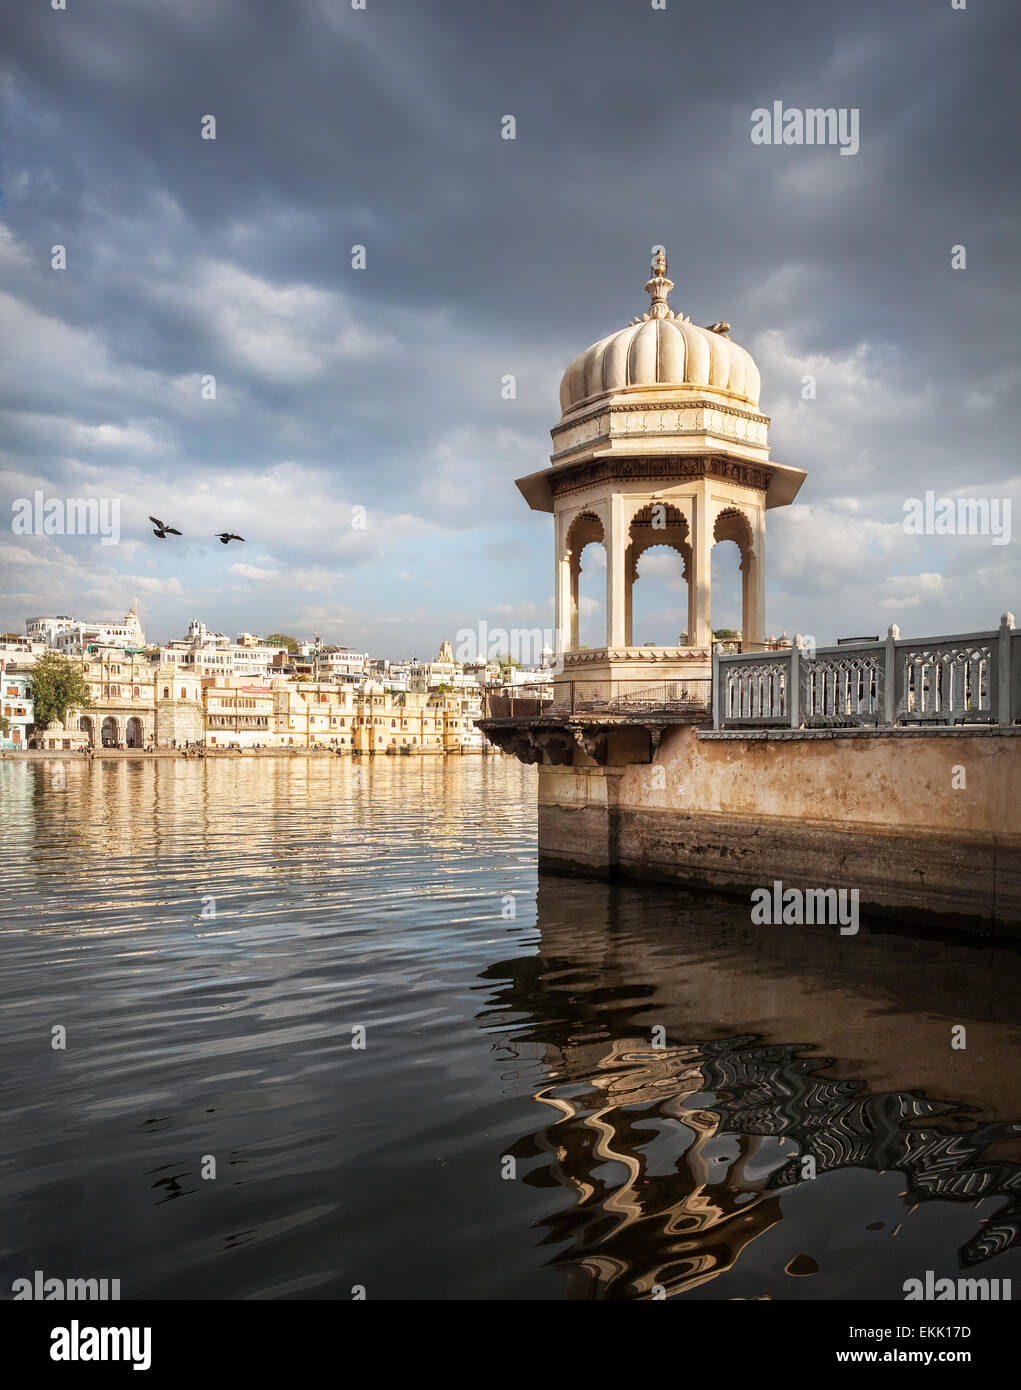 White tower with arches near Lake Pichola at cloudy sky in Udaipur, Rajasthan, India - Stock Image